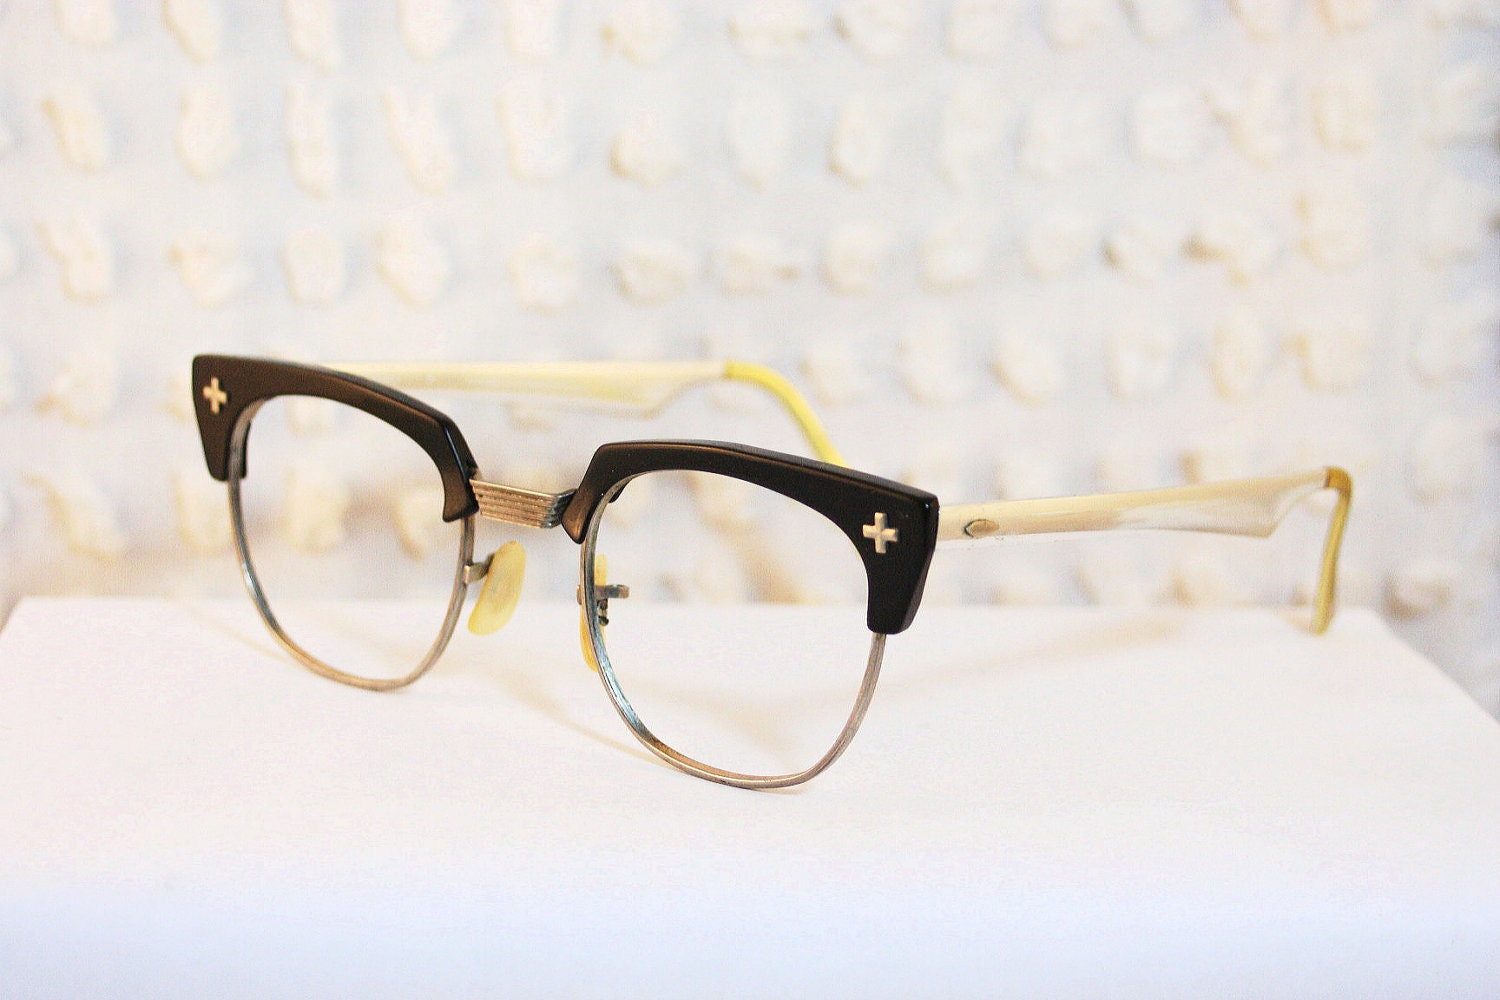 Black Cross Browline 1950's Eyeglasses G Man Zyl Silver Aluminum Mirror Temple Large Size 48/22 by Bausch and Lomb